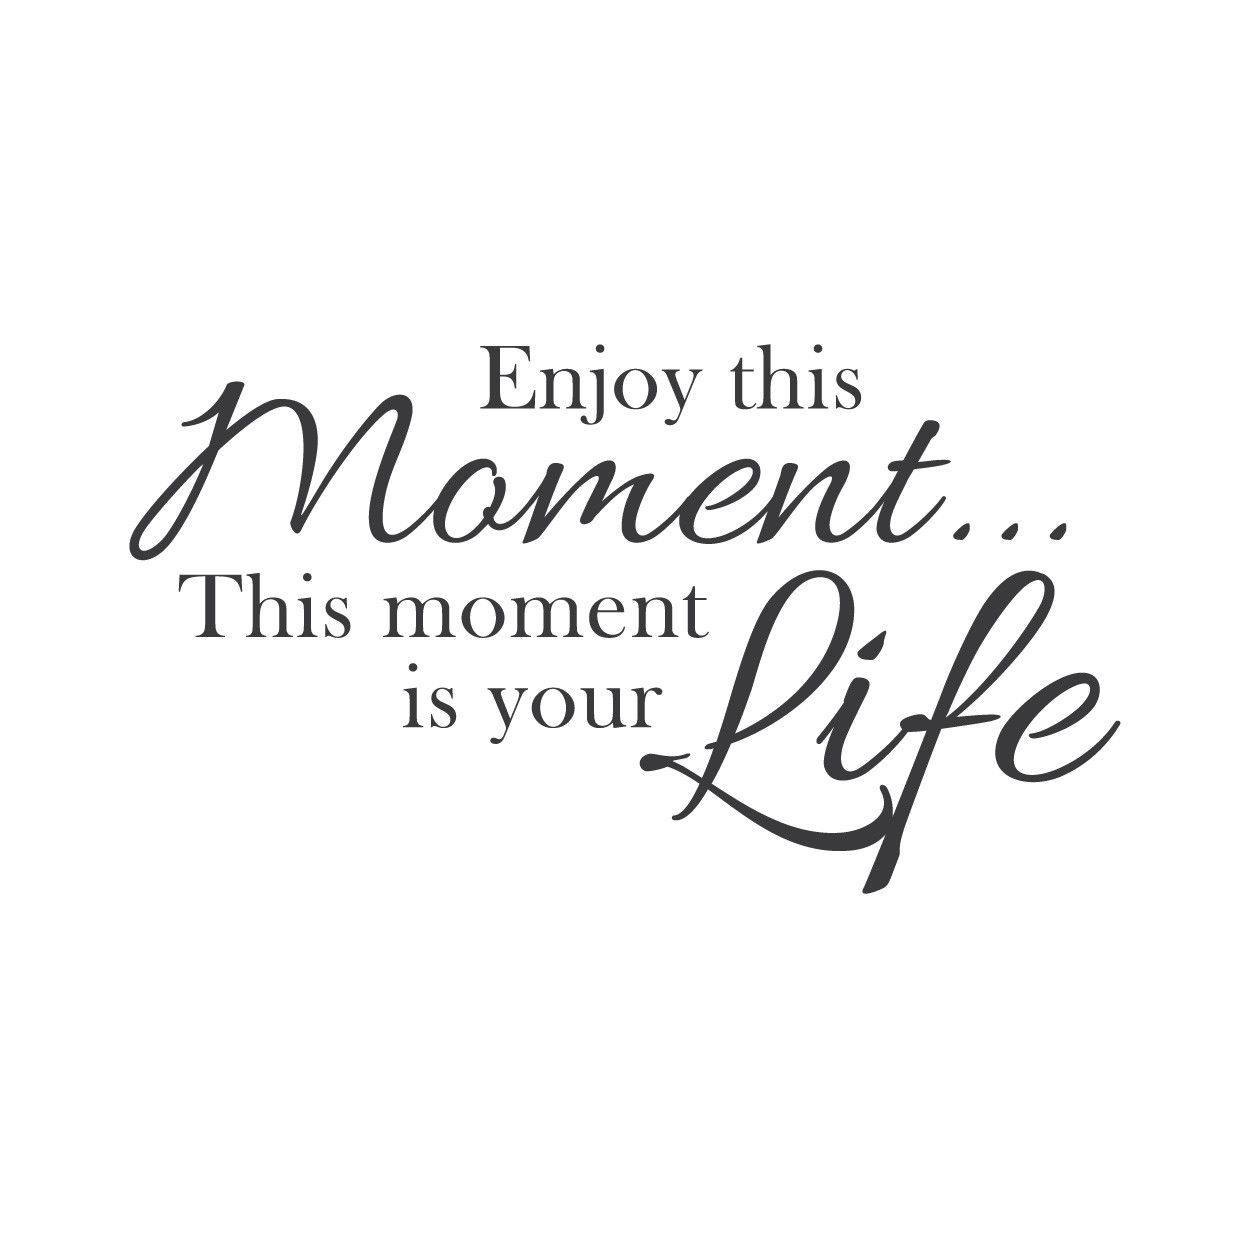 Wall Quotes Wall Decals Enjoy The Moment Neruda N Love Quotes